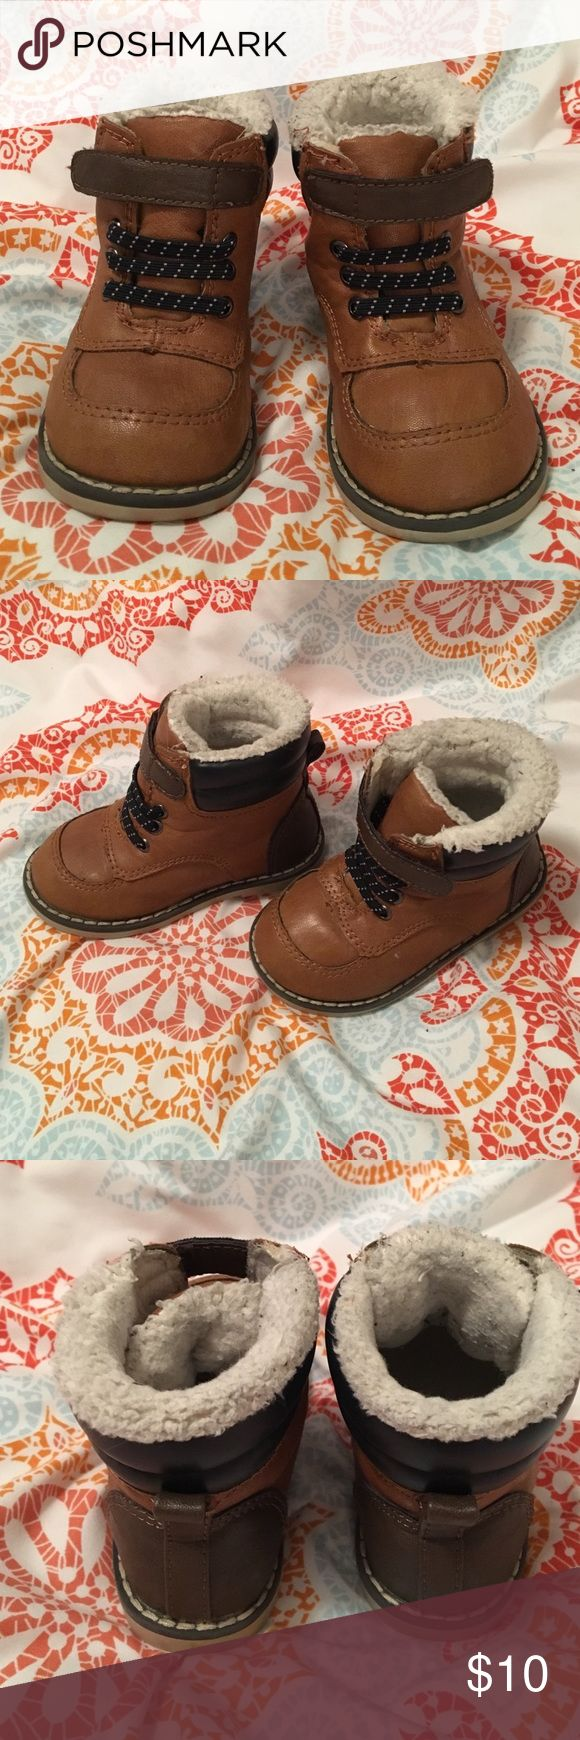 Old Navy Sherpa Lined Toddler Boots Size 6 toddler boy boots from Old Navy. Great condition other than the sherpa part which does show some wear. Old Navy Shoes Boots